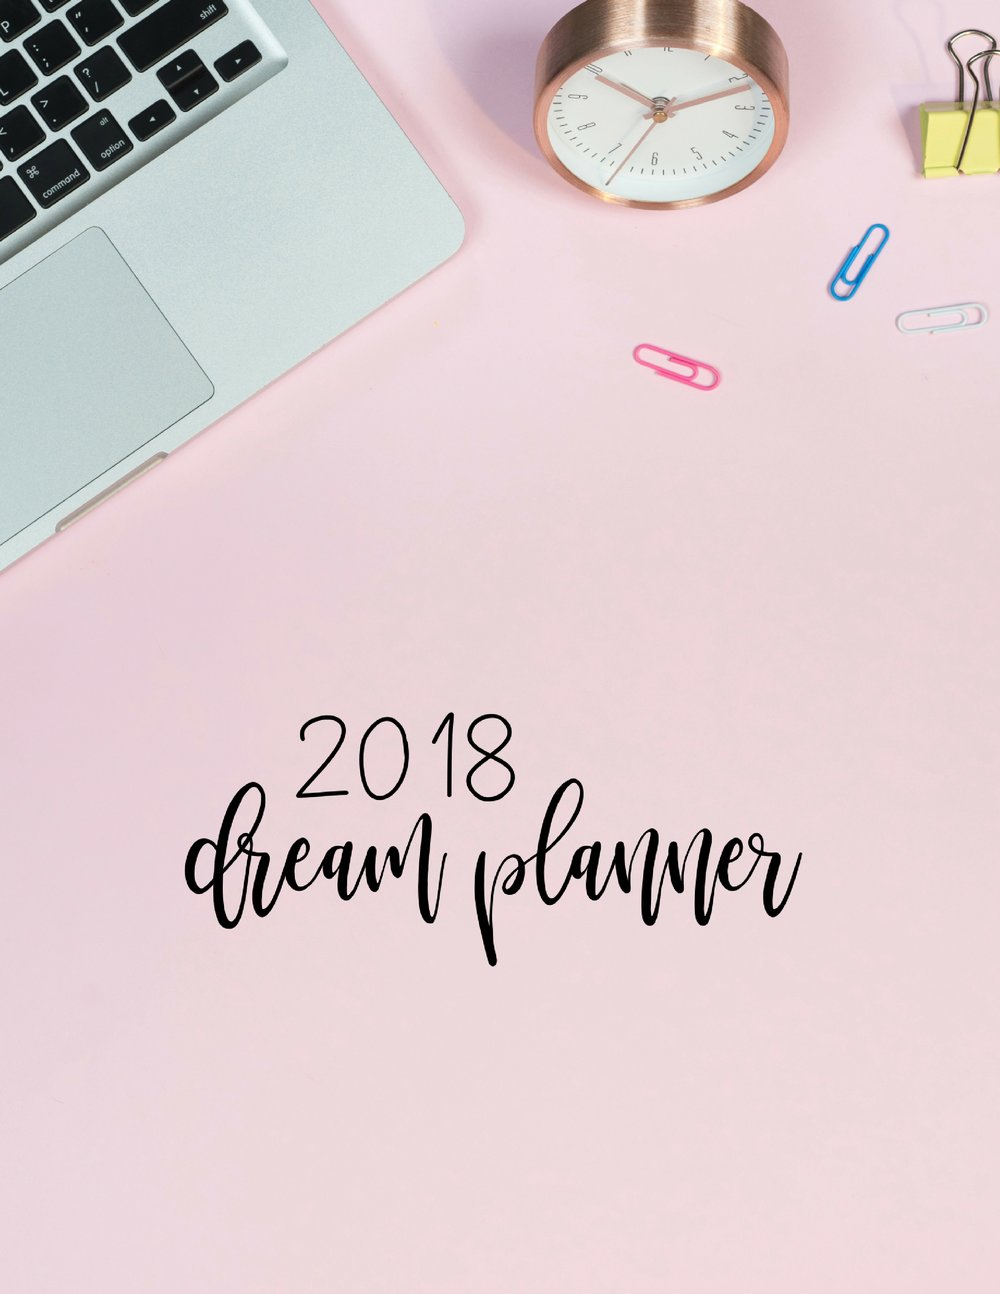 Download this dream planner to create your best year ever